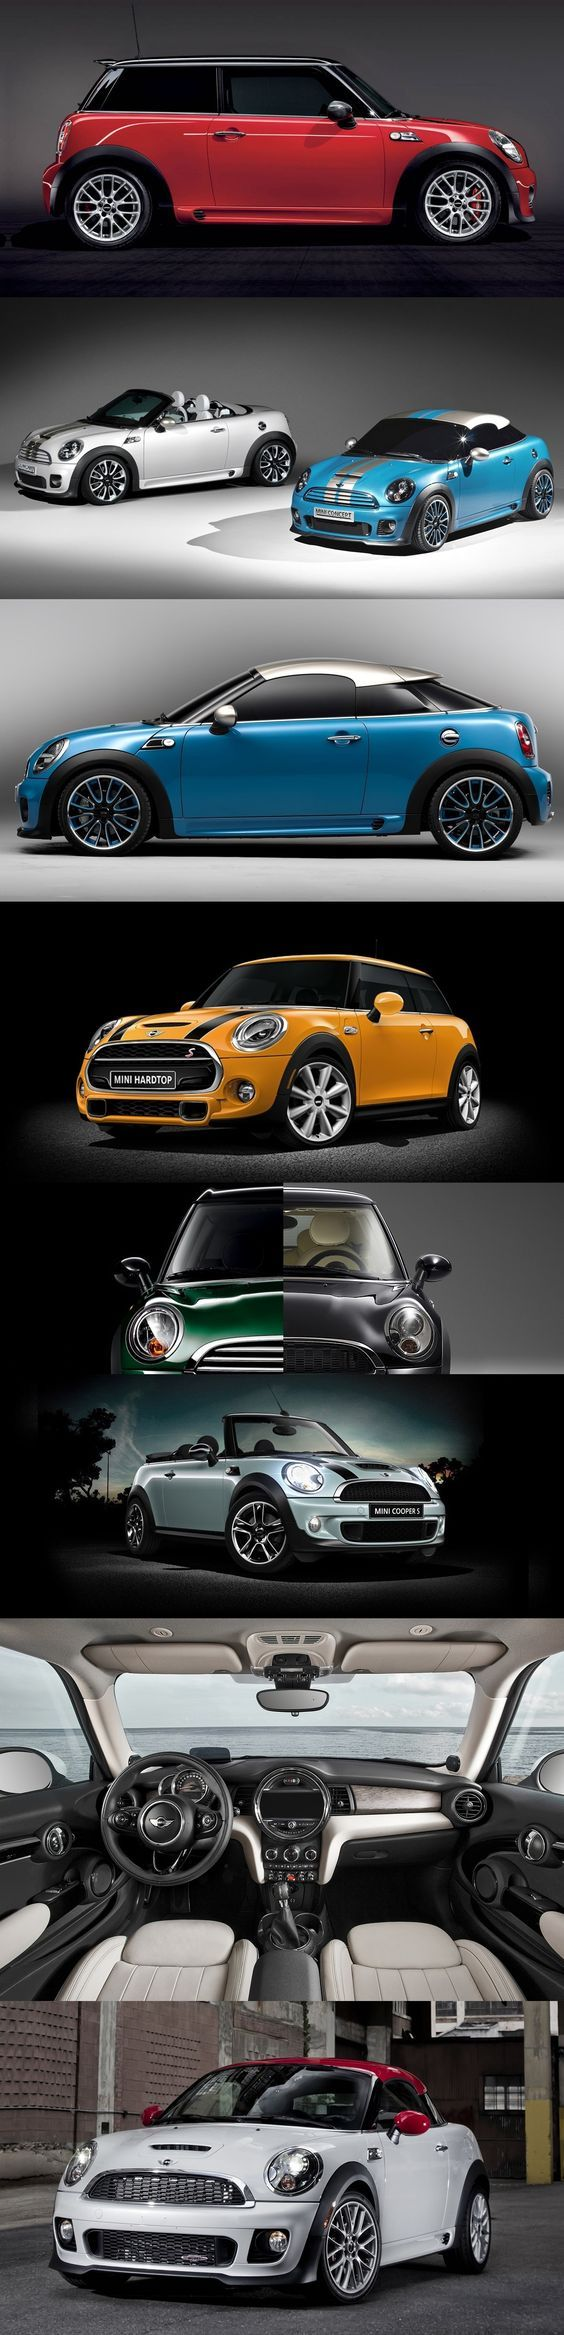 63 best mini convertible images on pinterest convertible mini mini coopers for sale welcome to ruelspot we have a large inventory buycottarizona Choice Image